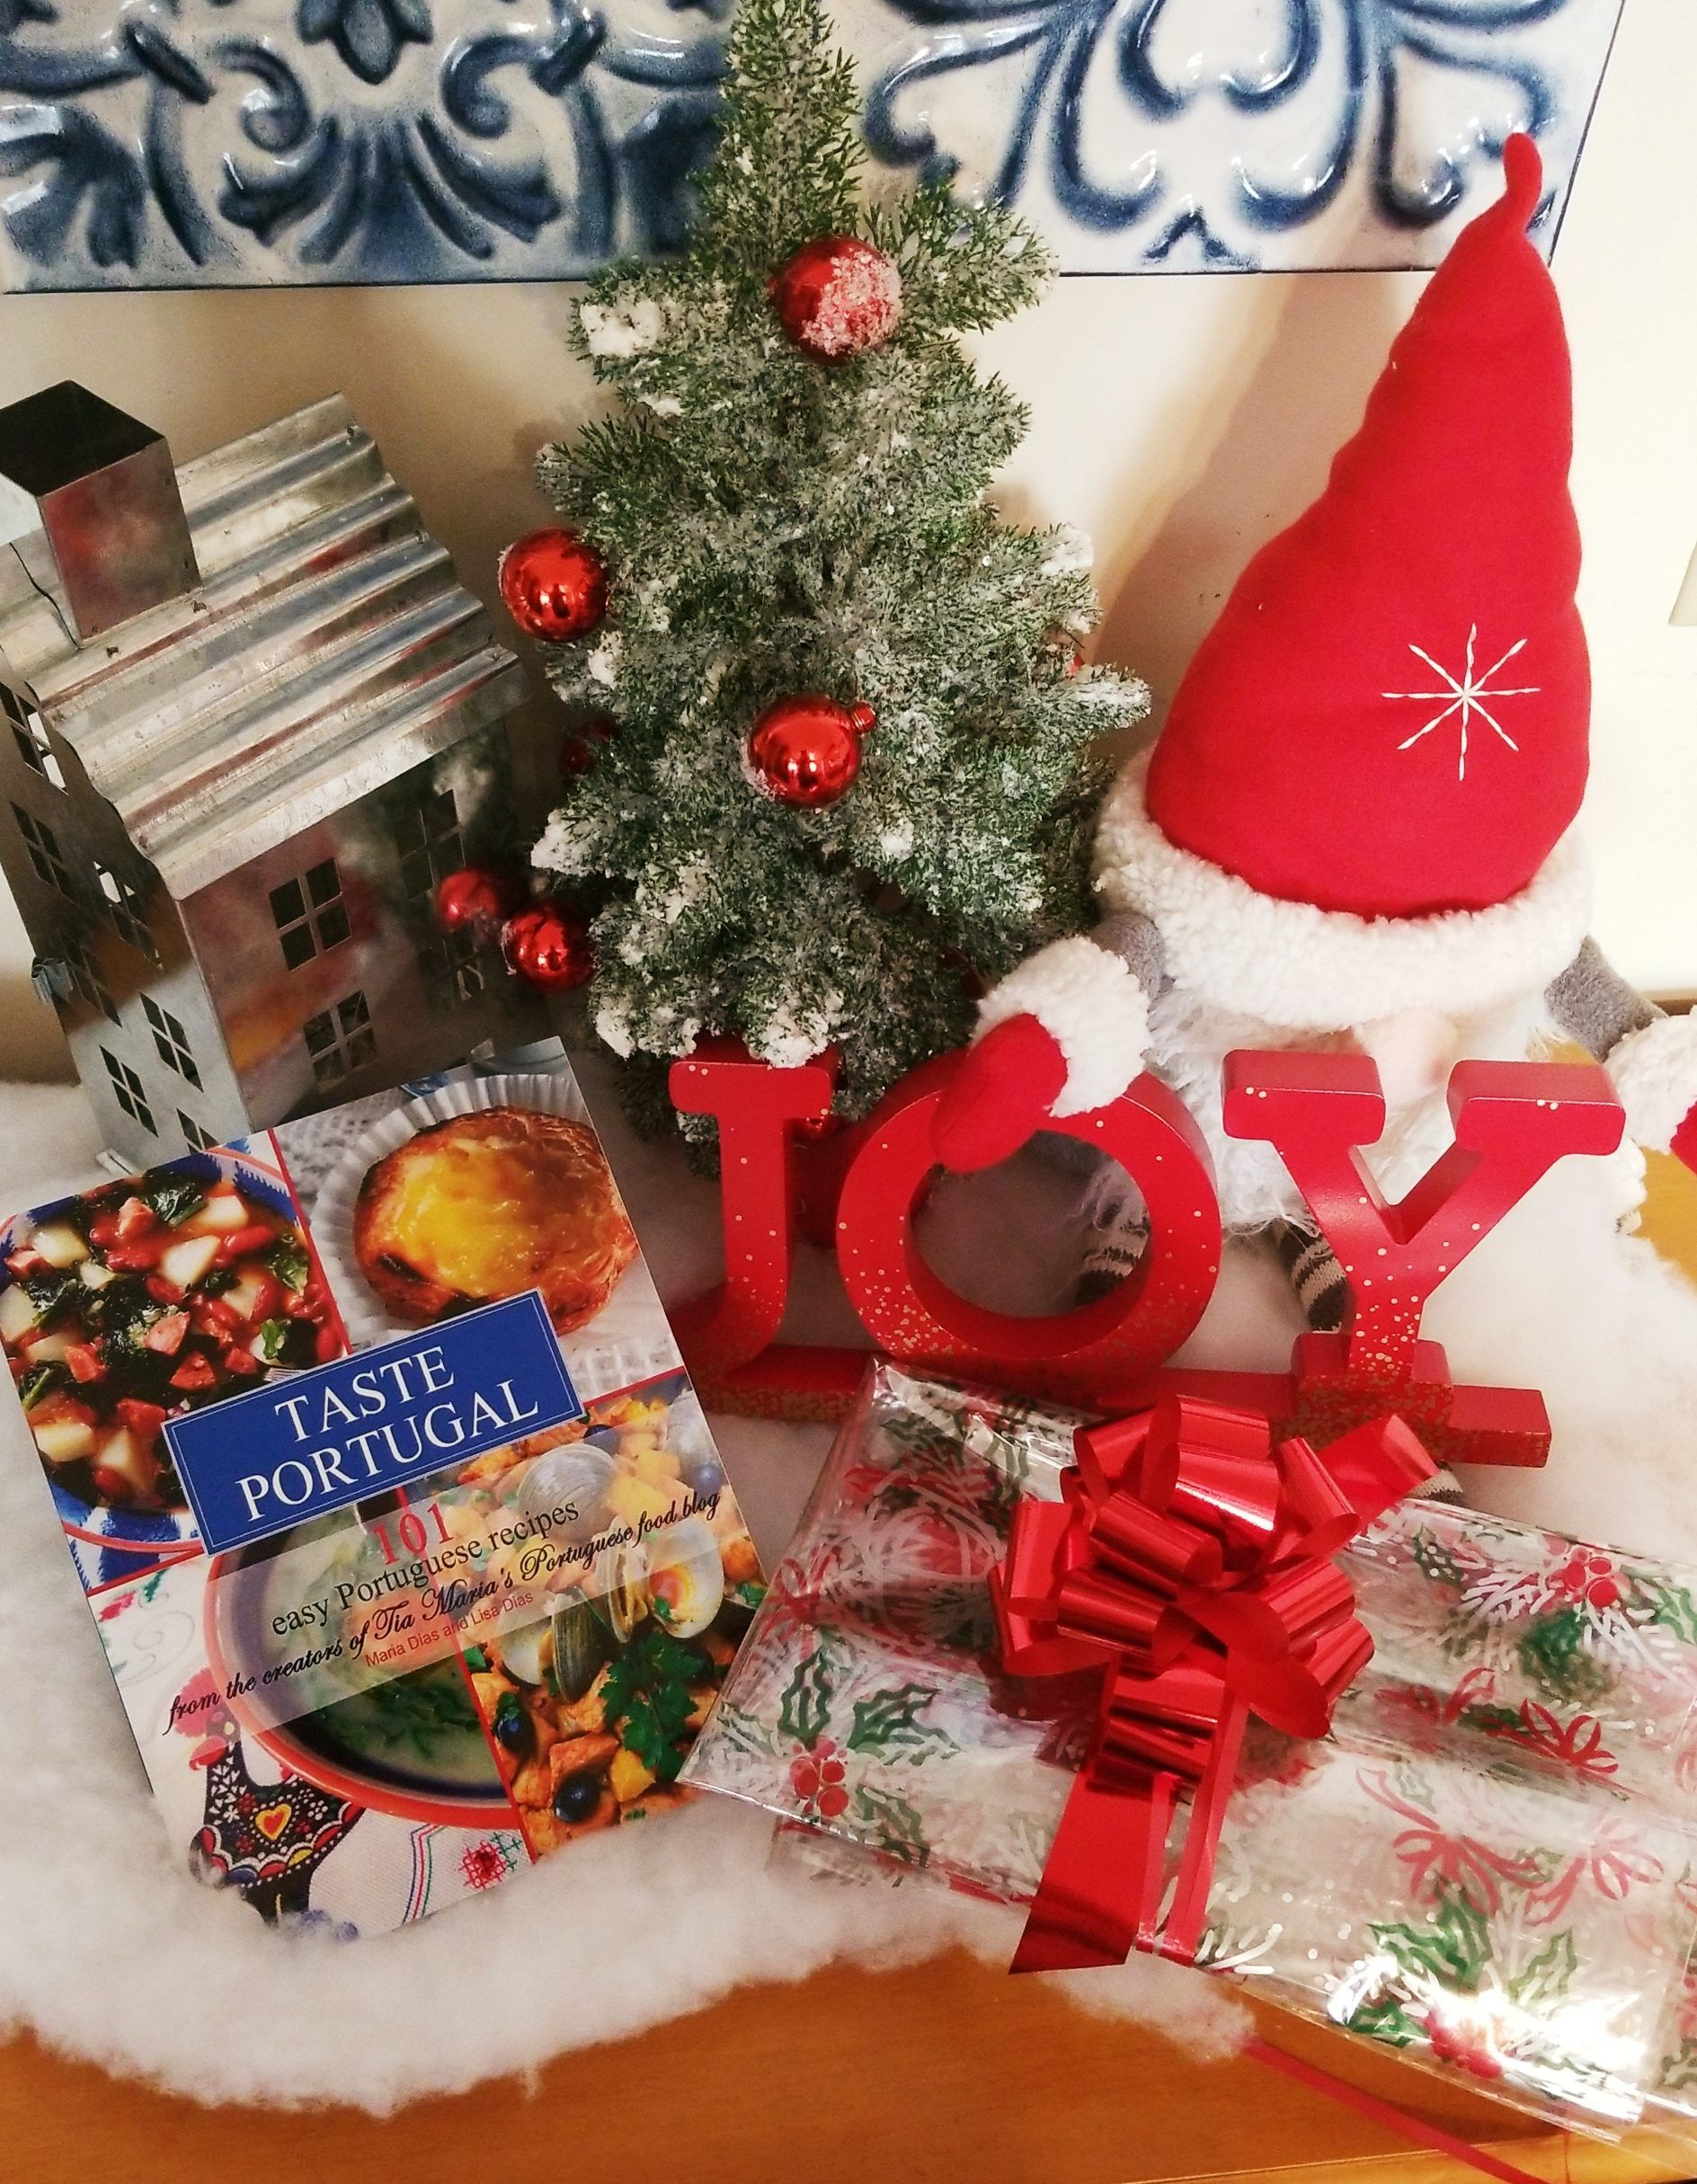 Christmas In Portugal 2019.Biscoitos Portuguese Bisquits My Stuff In 2019